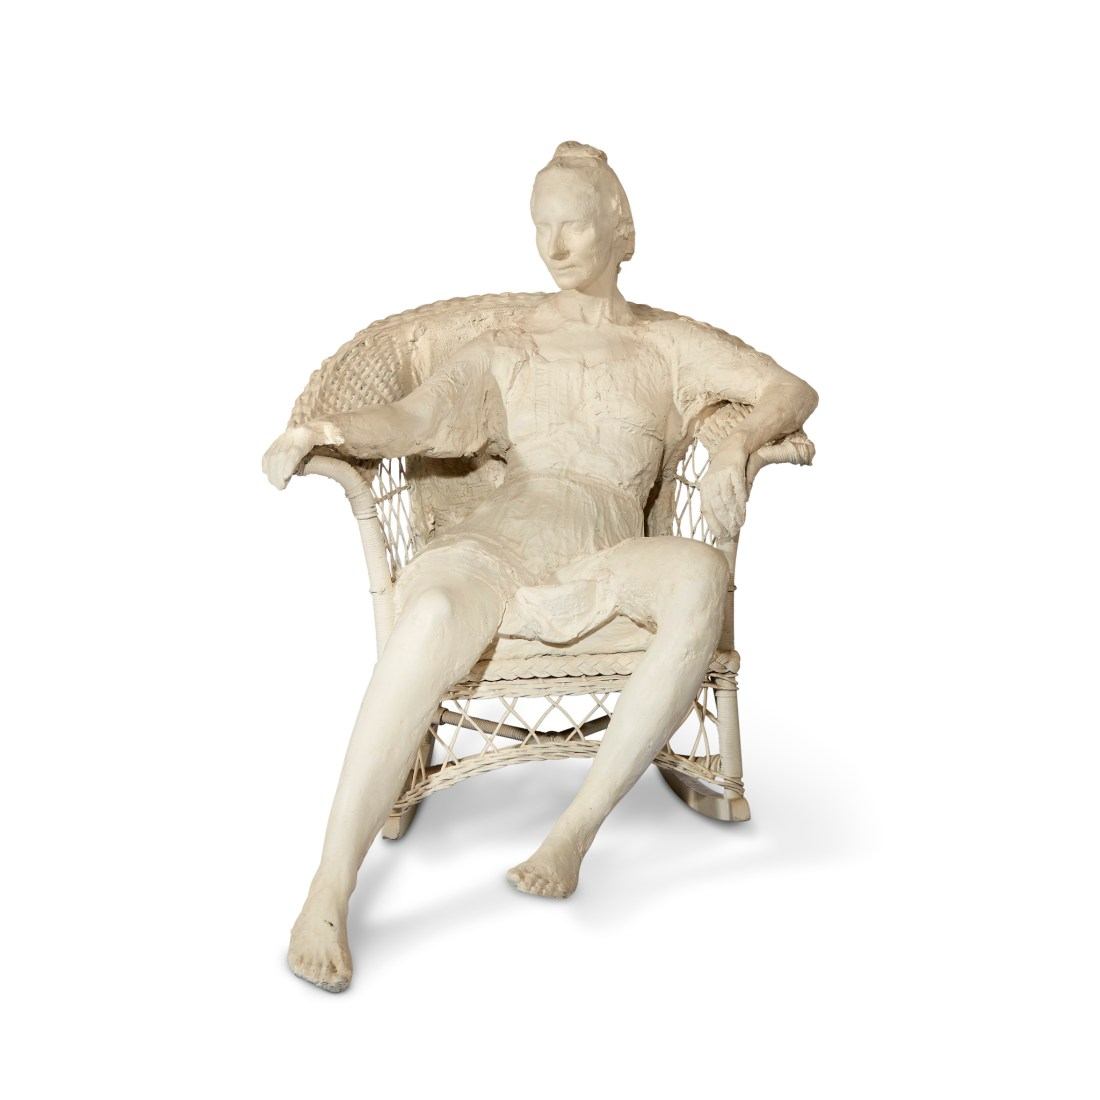 Woman in White Wicker Rocker, a 1985 limited edition bronze by George Segal.